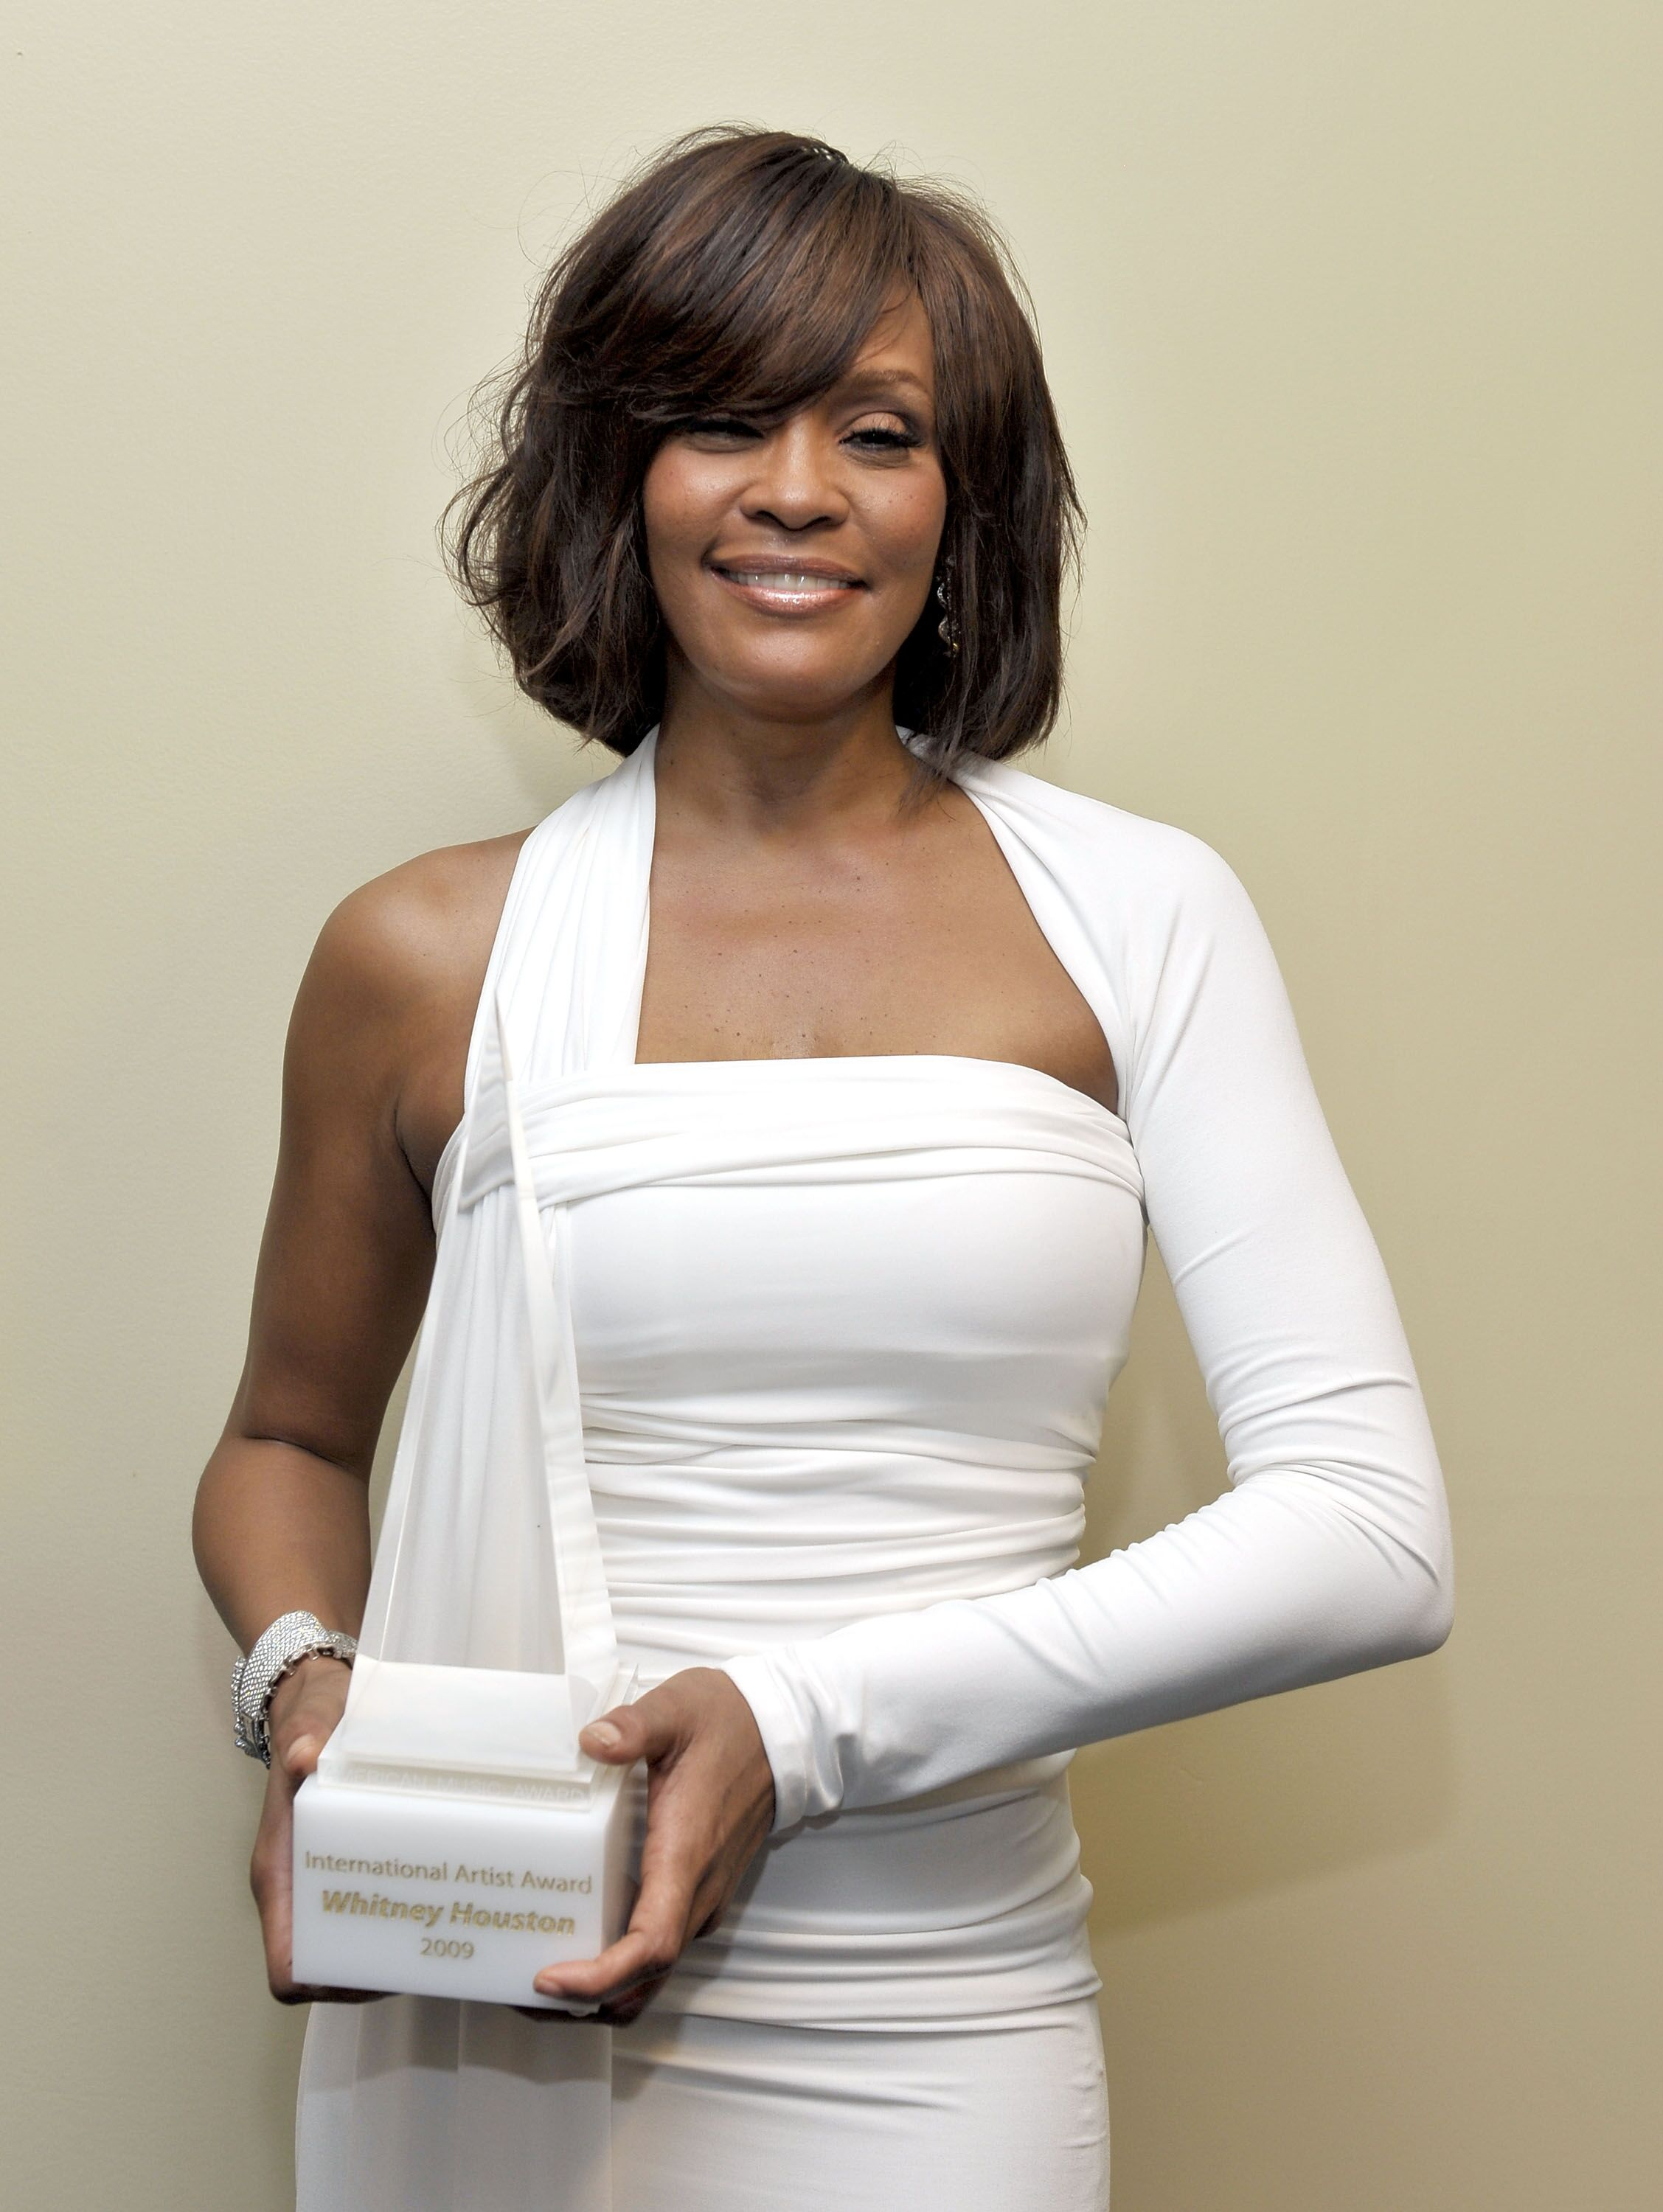 A portrait of Whitney Houston with her International Artist Award  | Source: Getty Images/GlobalImagesUkraine